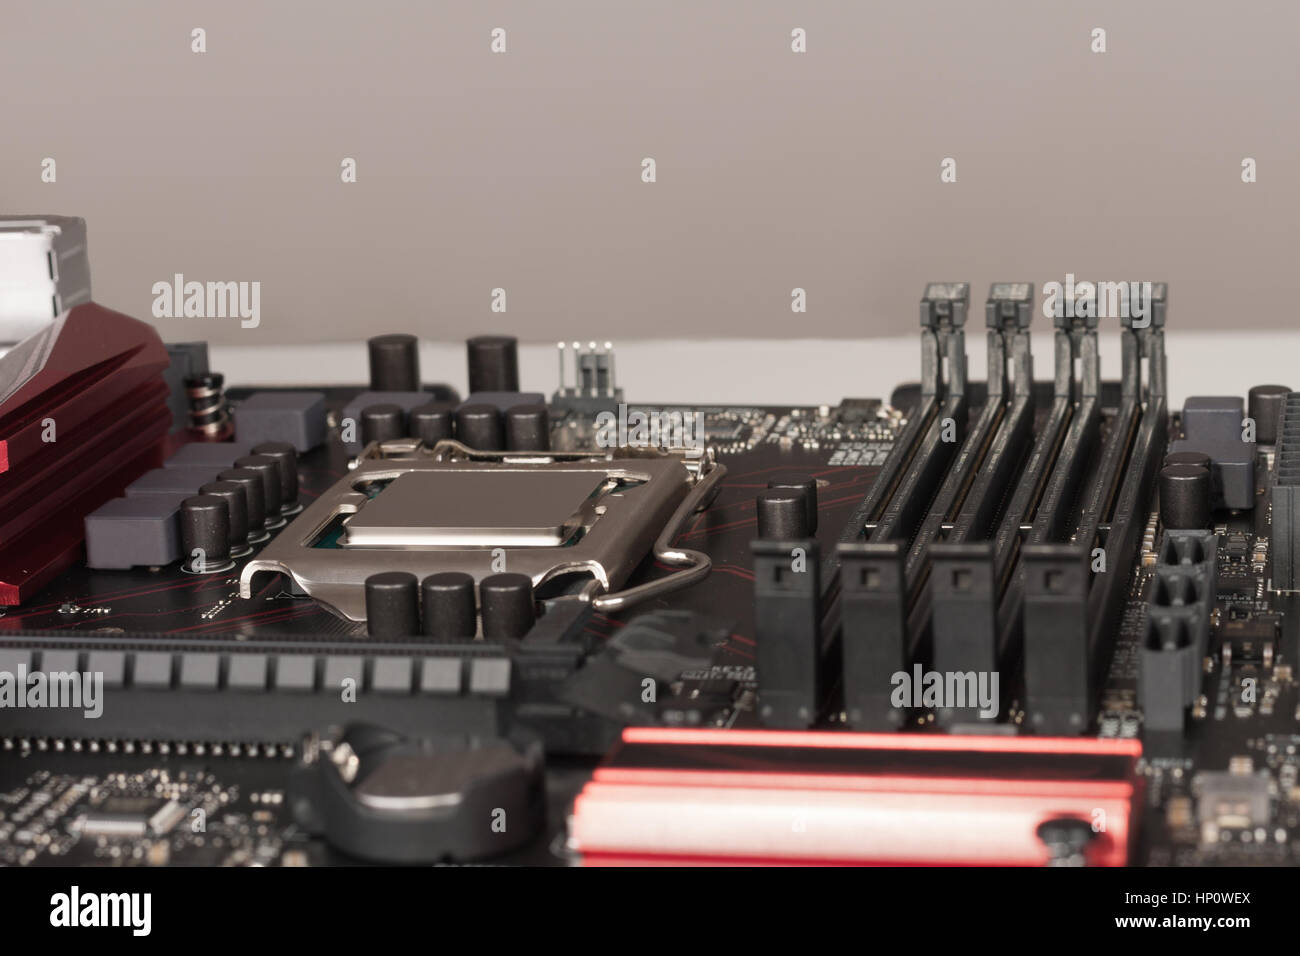 Close up of installed CPU processor on modern, new, gaming motherboard. Stock Photo